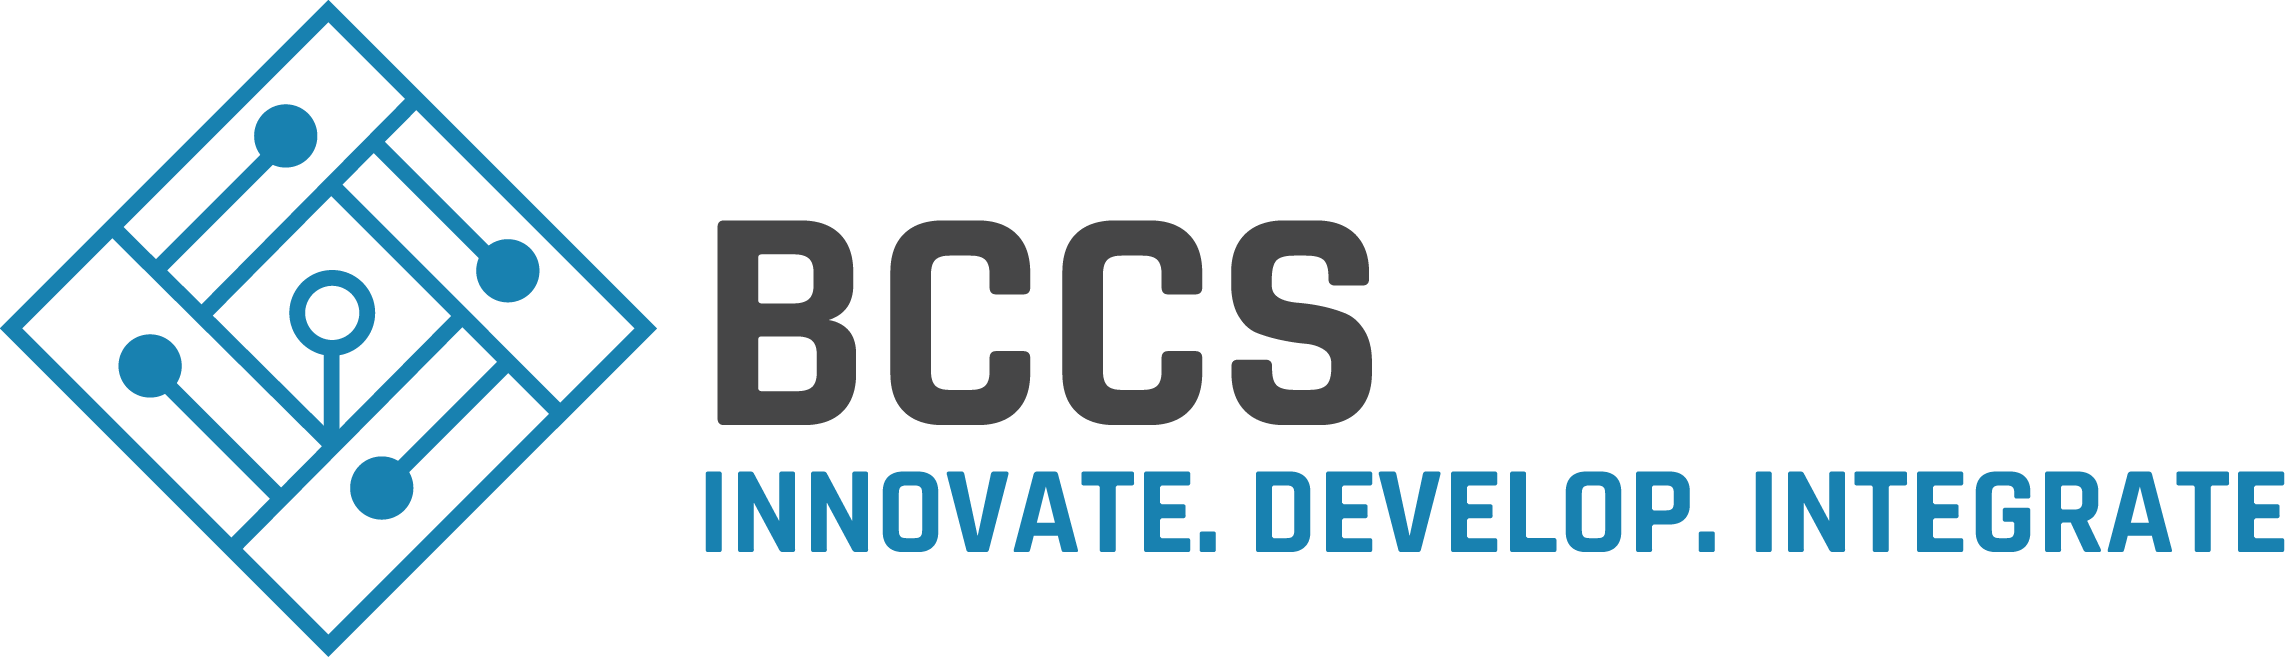 BCCS Cluster - Innovate. Develop. Integrate